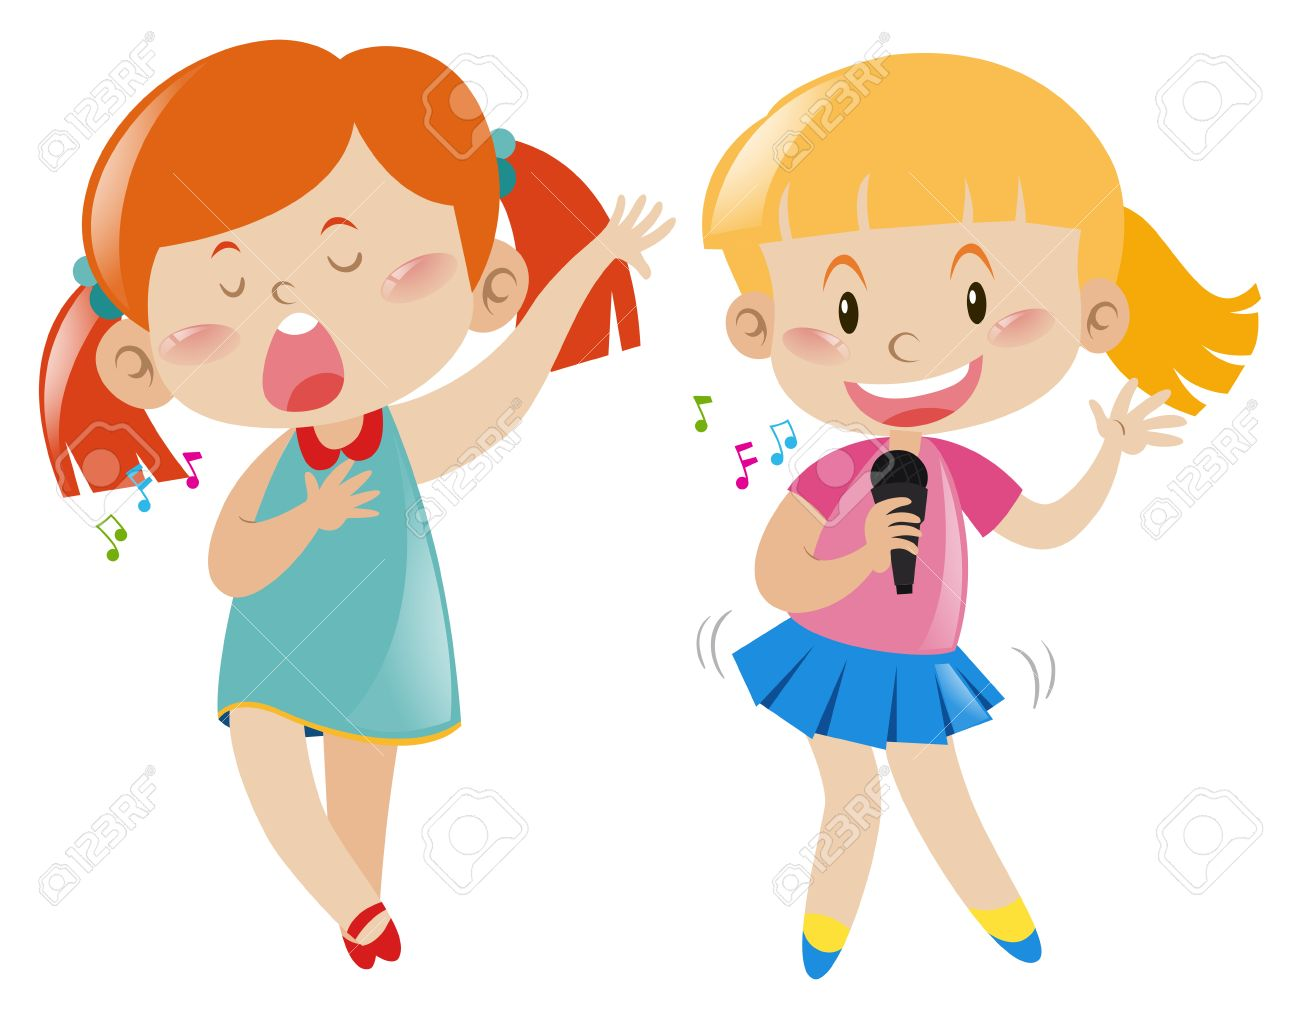 Singing girl images clipart royalty free stock Two girl singing and dancing » Clipart Station royalty free stock